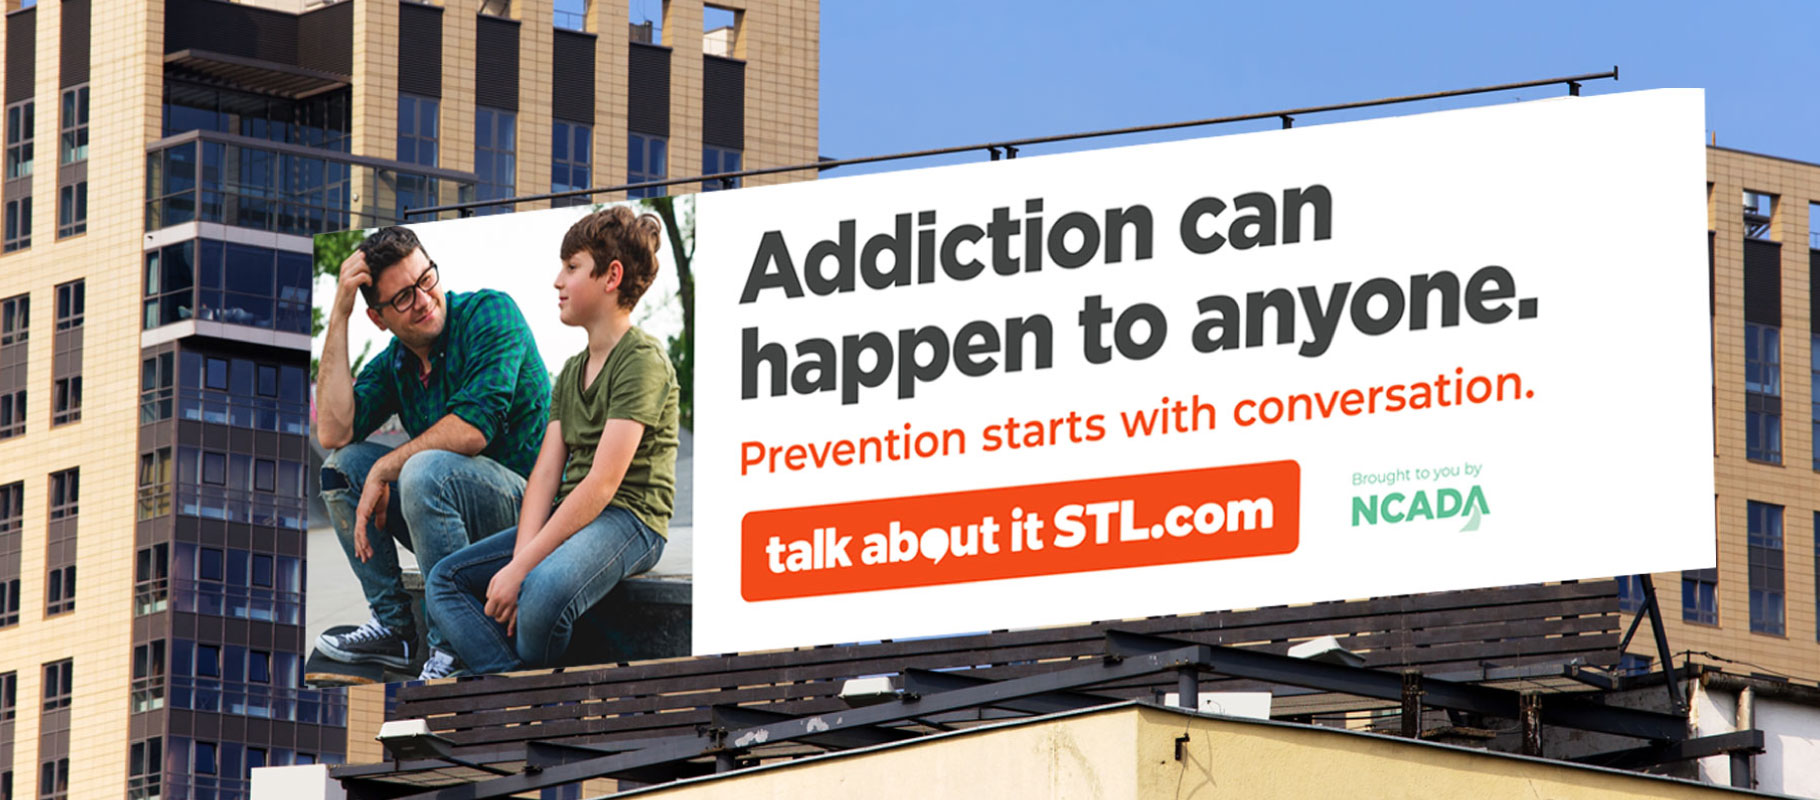 Talk About It billboard sitting on top of a building